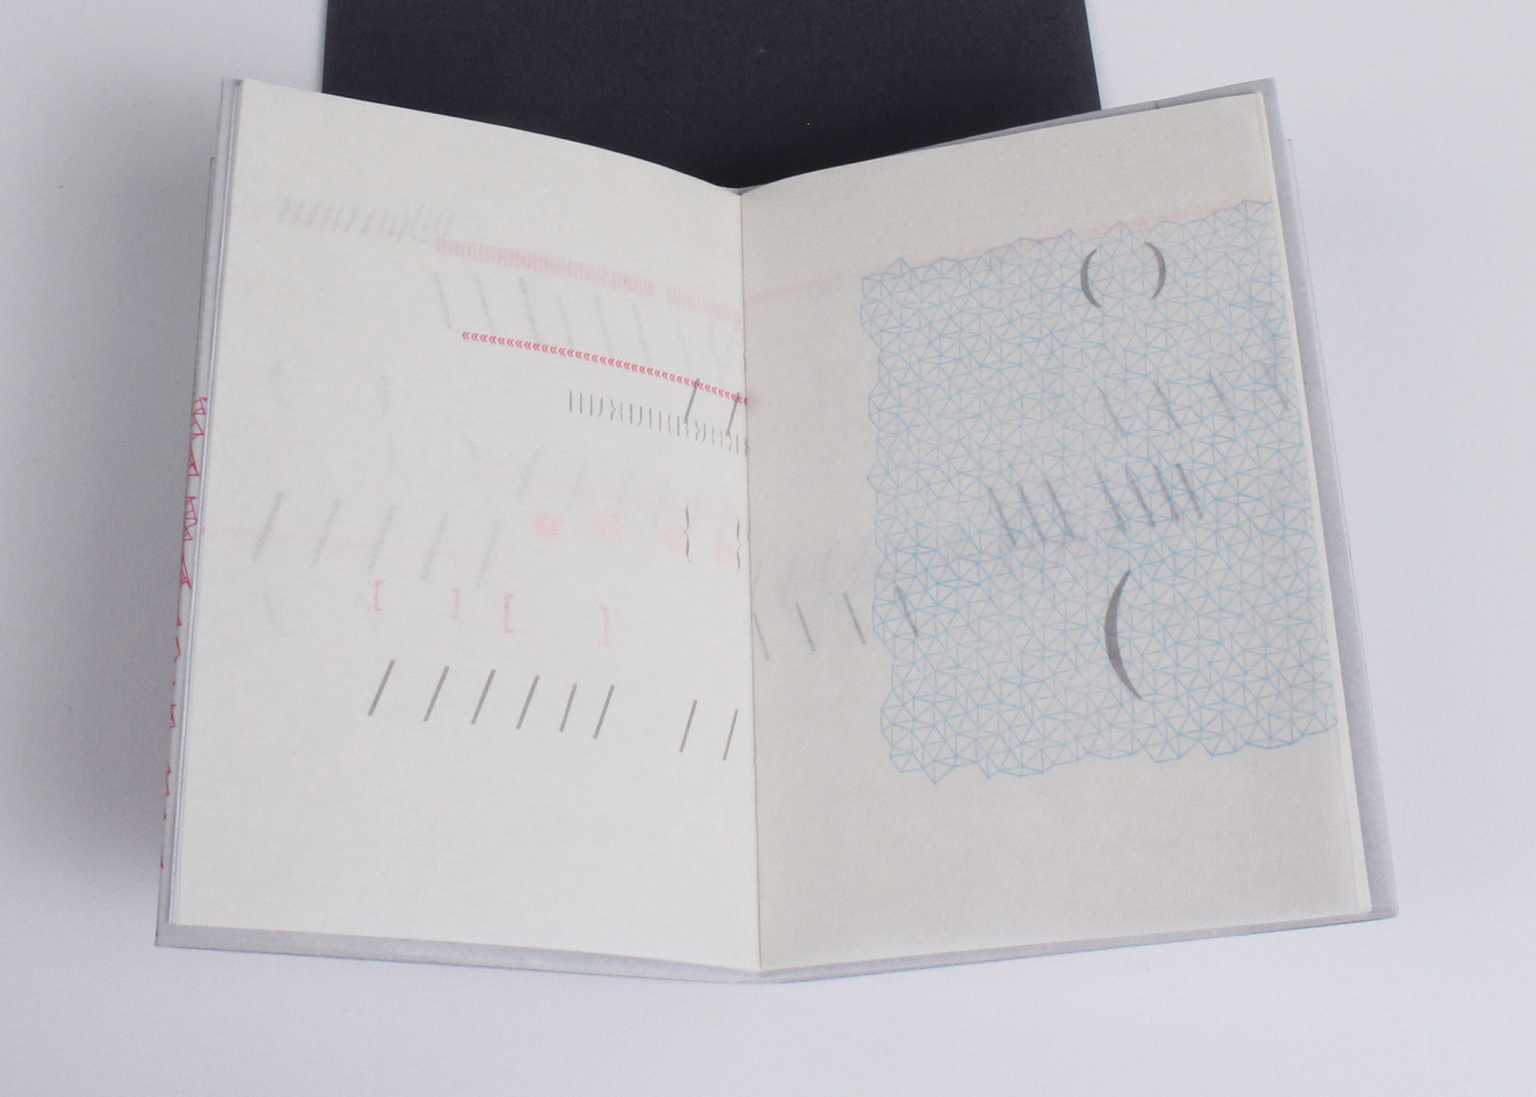 Redirecting Shift, artist book